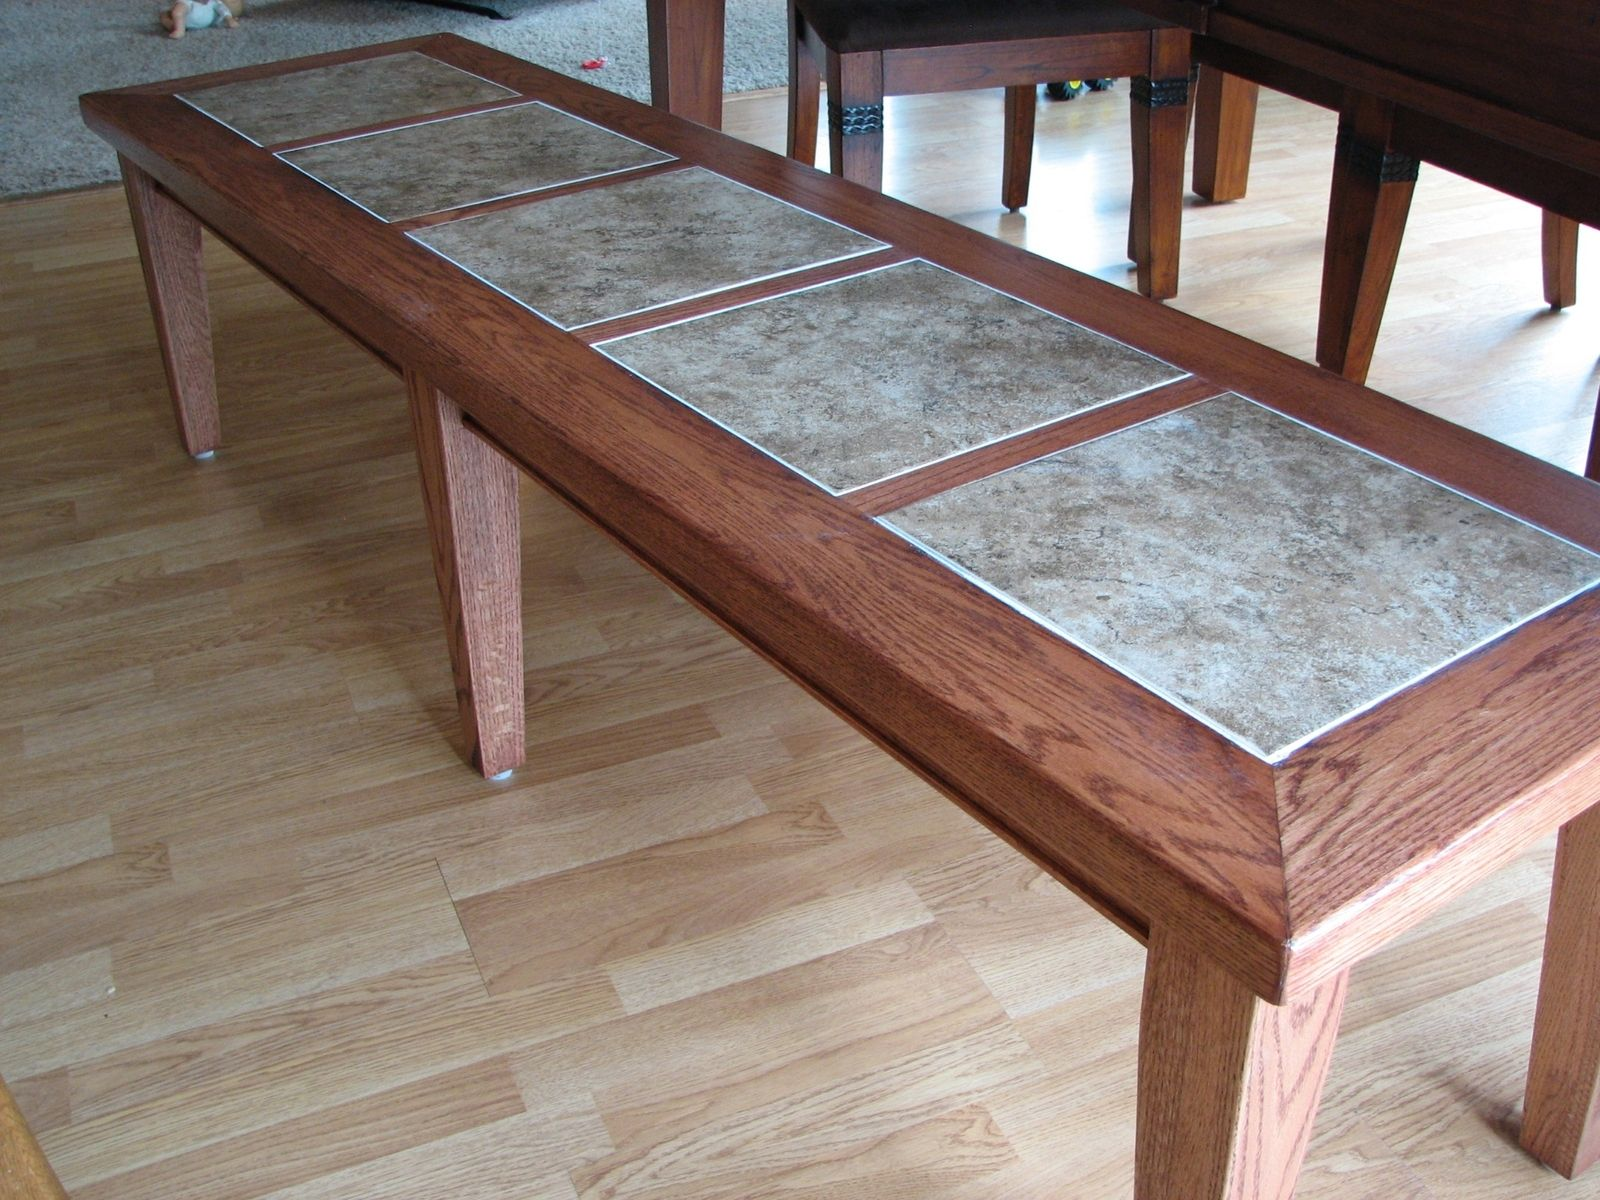 Hand Crafted Inlay Tile Dining Table Bench By Stockwell